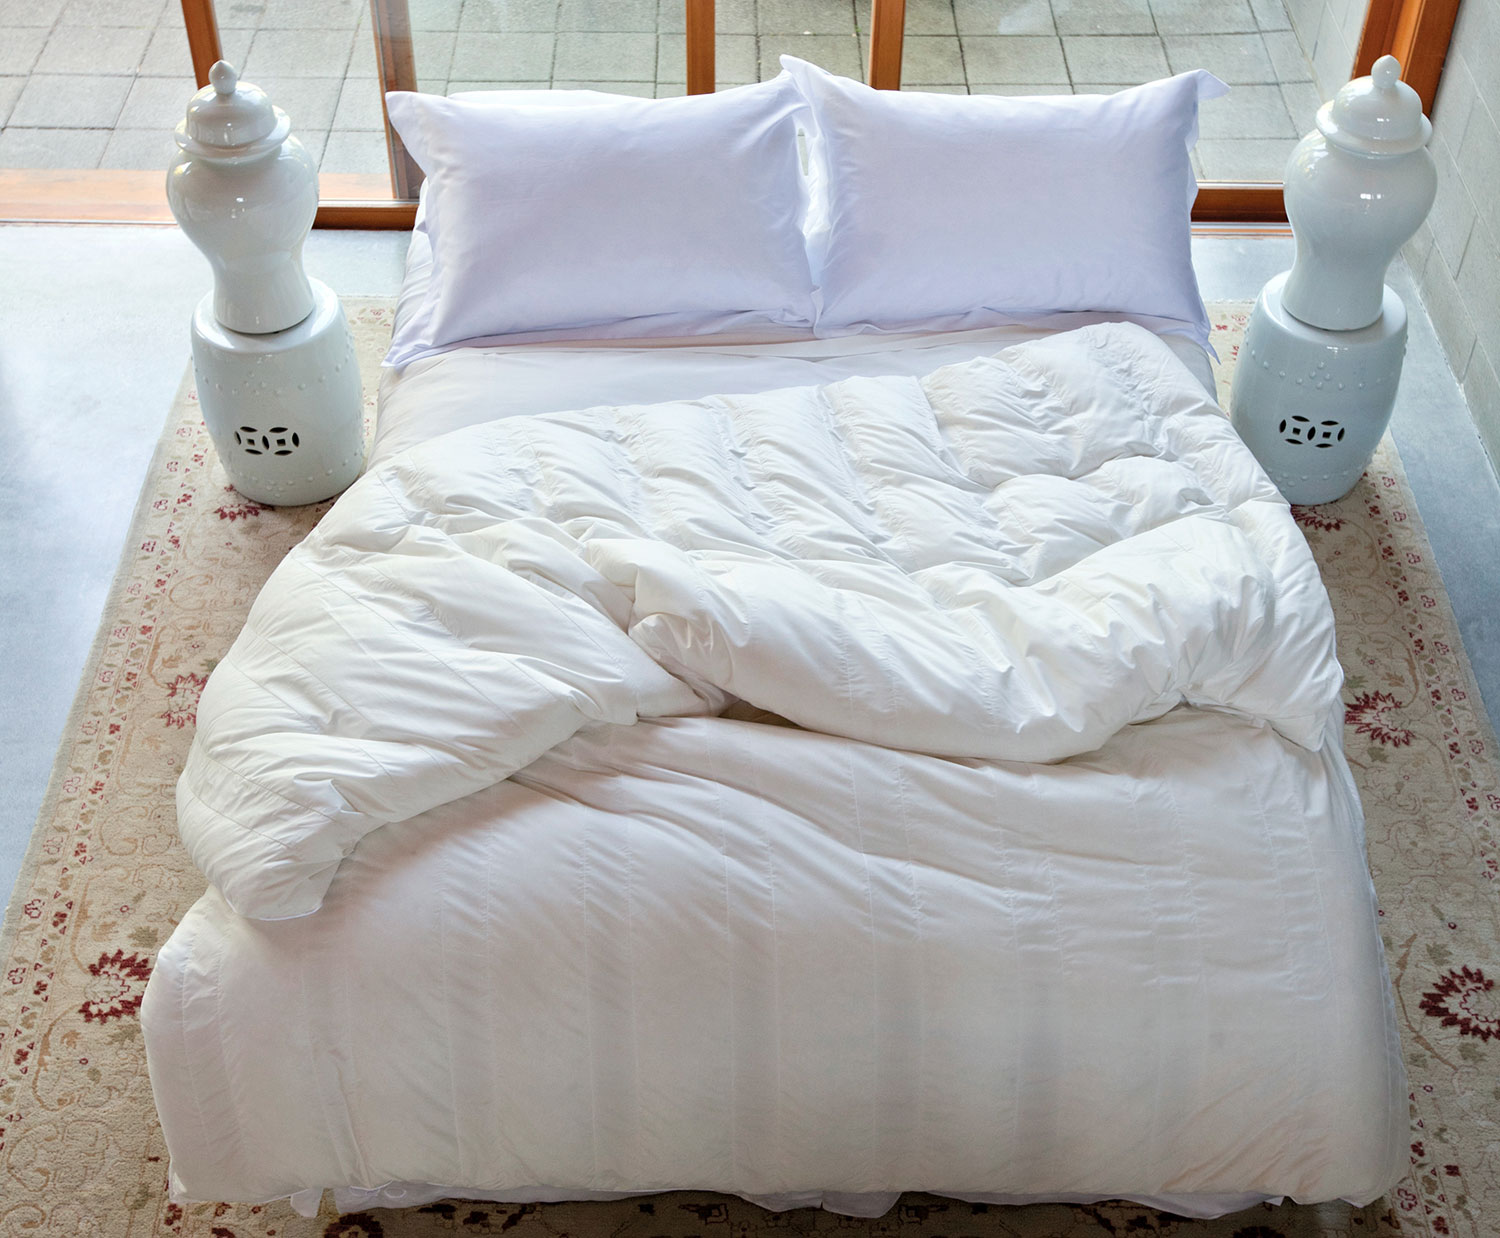 Soving by St. Geneve Luxury Bedding